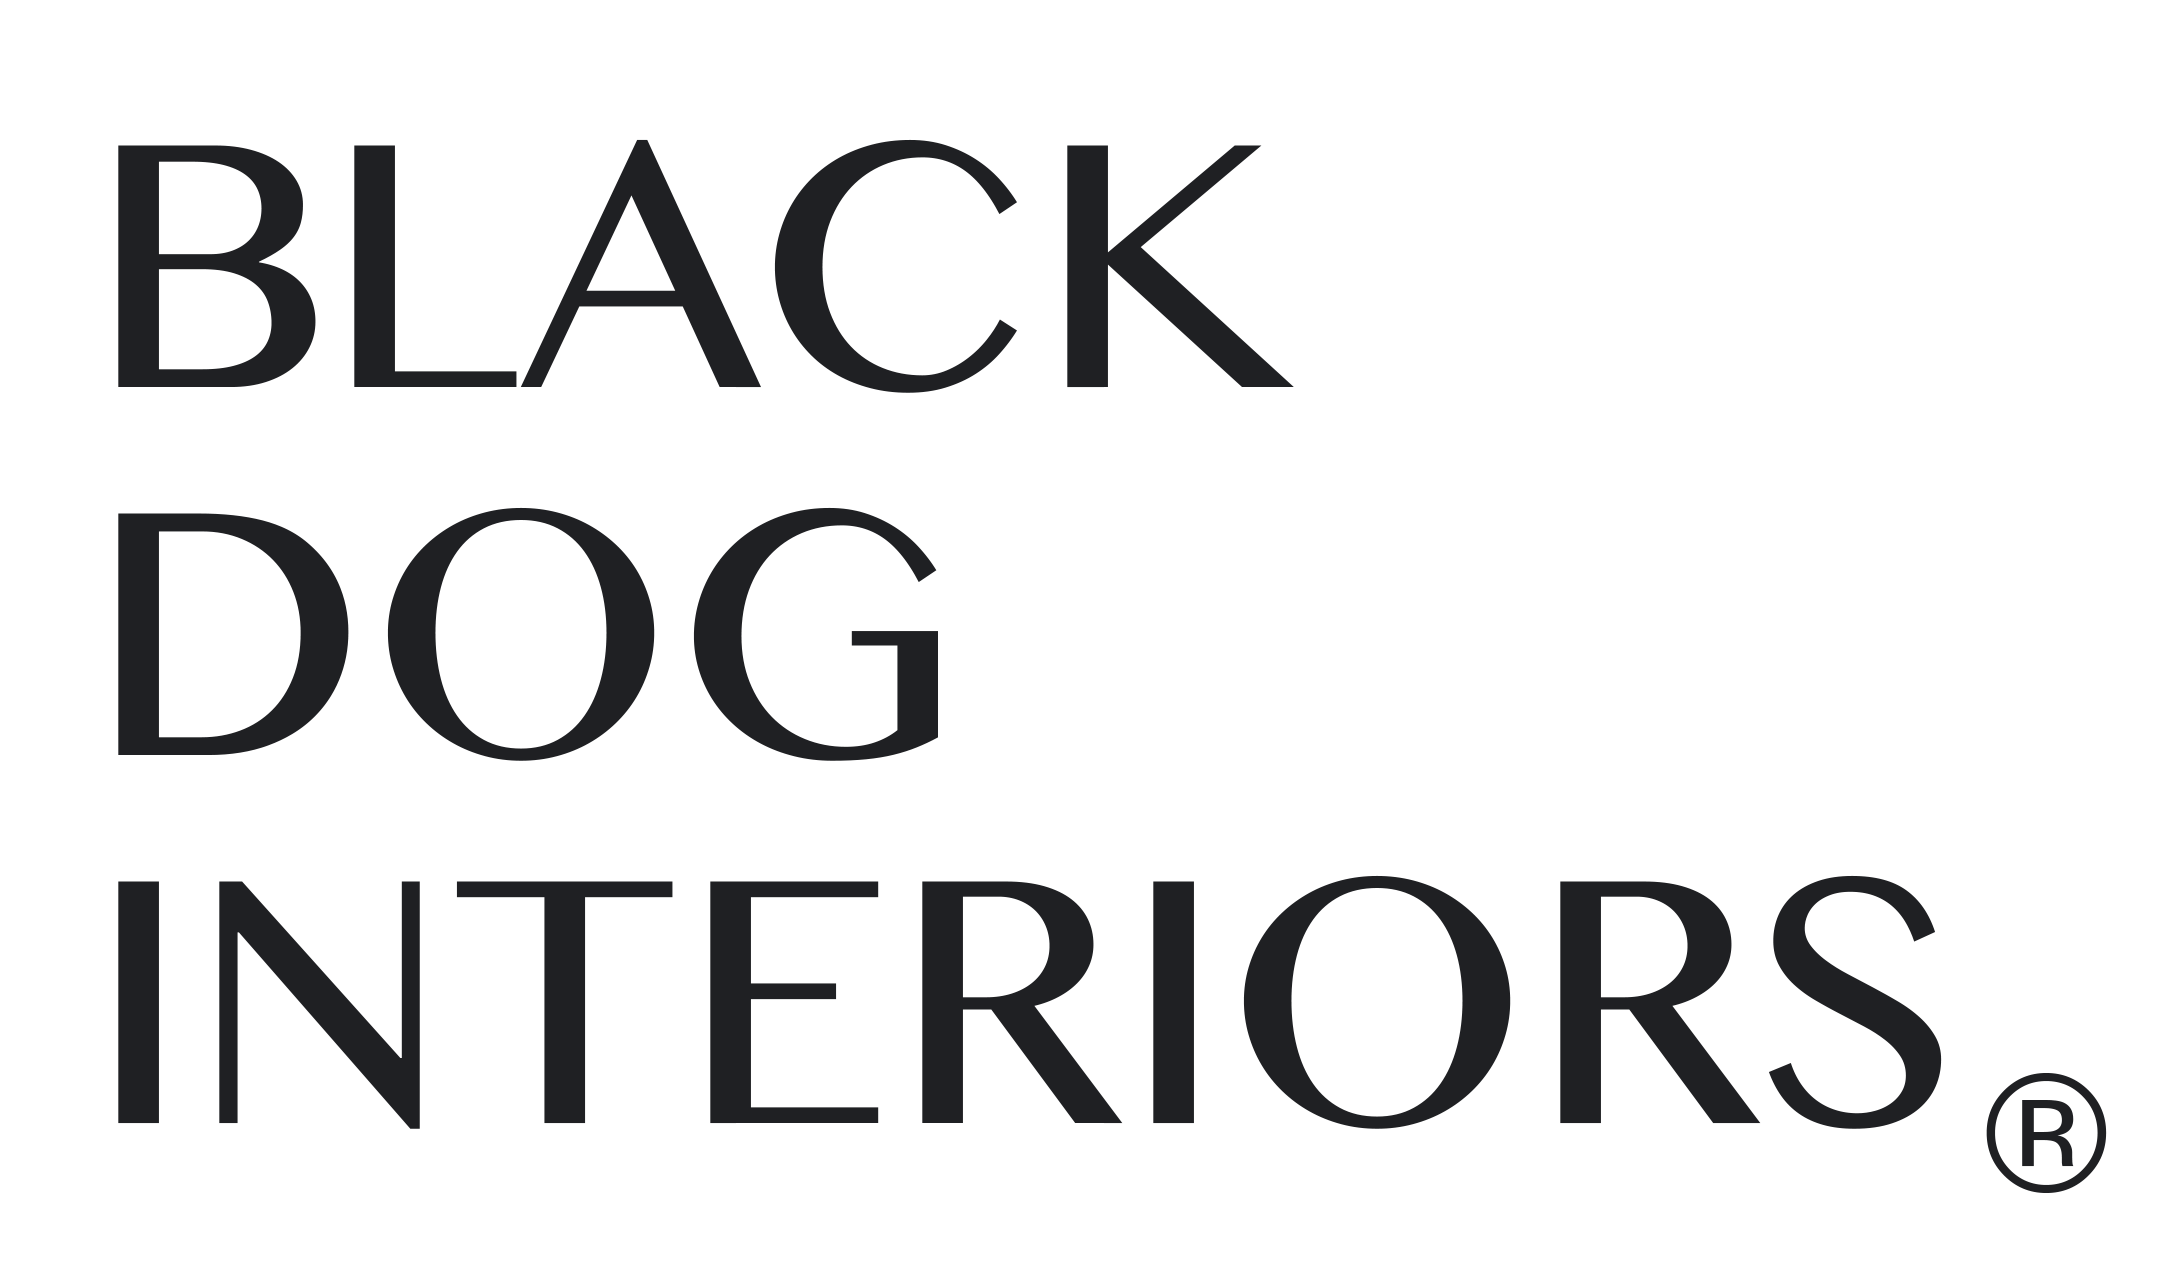 Black Dog Interiors